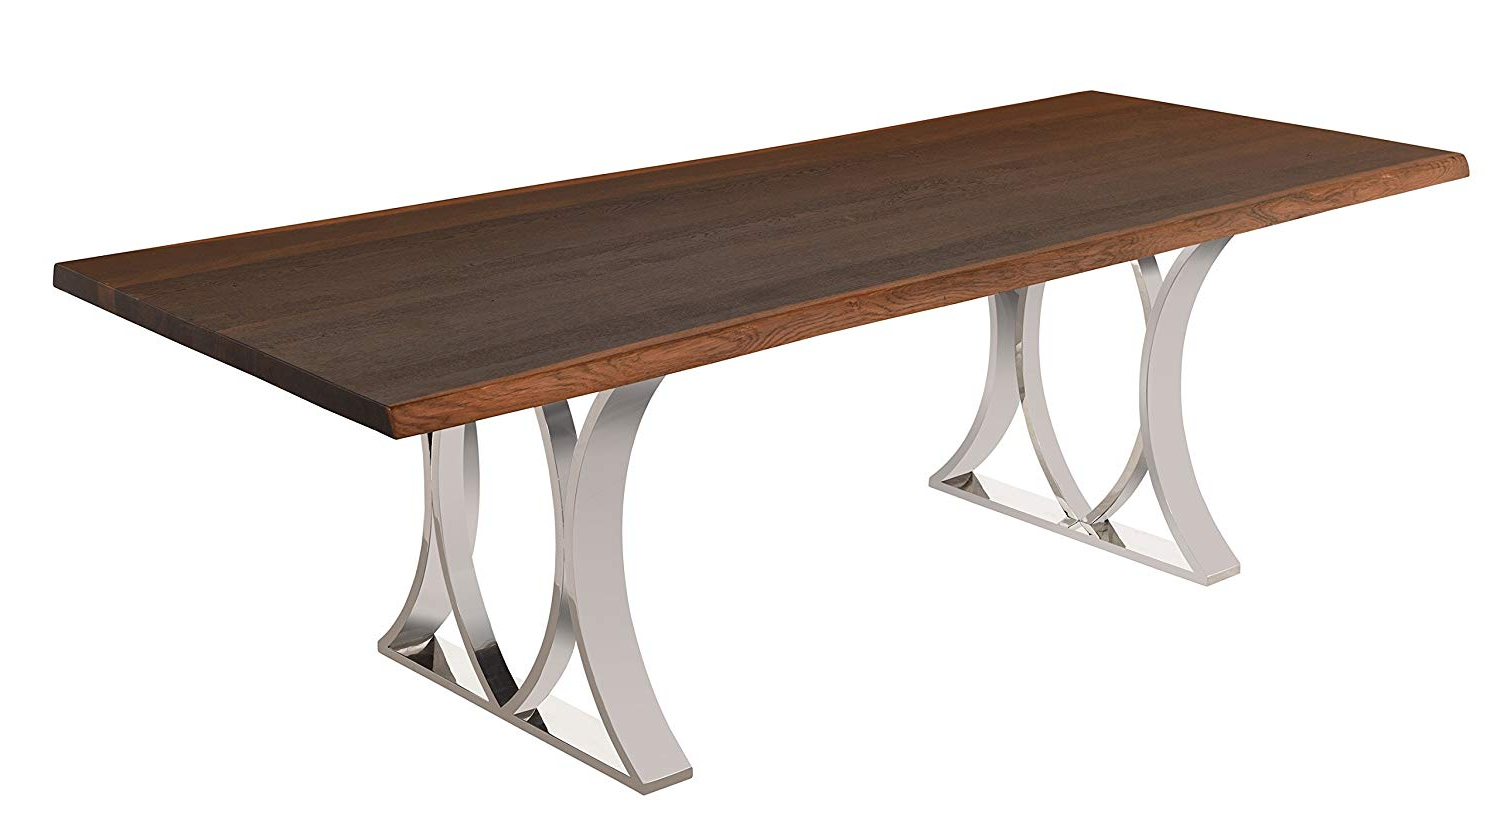 Latest Dining Tables In Smoked/seared Oak Within Amazon – Nuevo Rectangular Mila Dining Table With Matte (View 9 of 25)